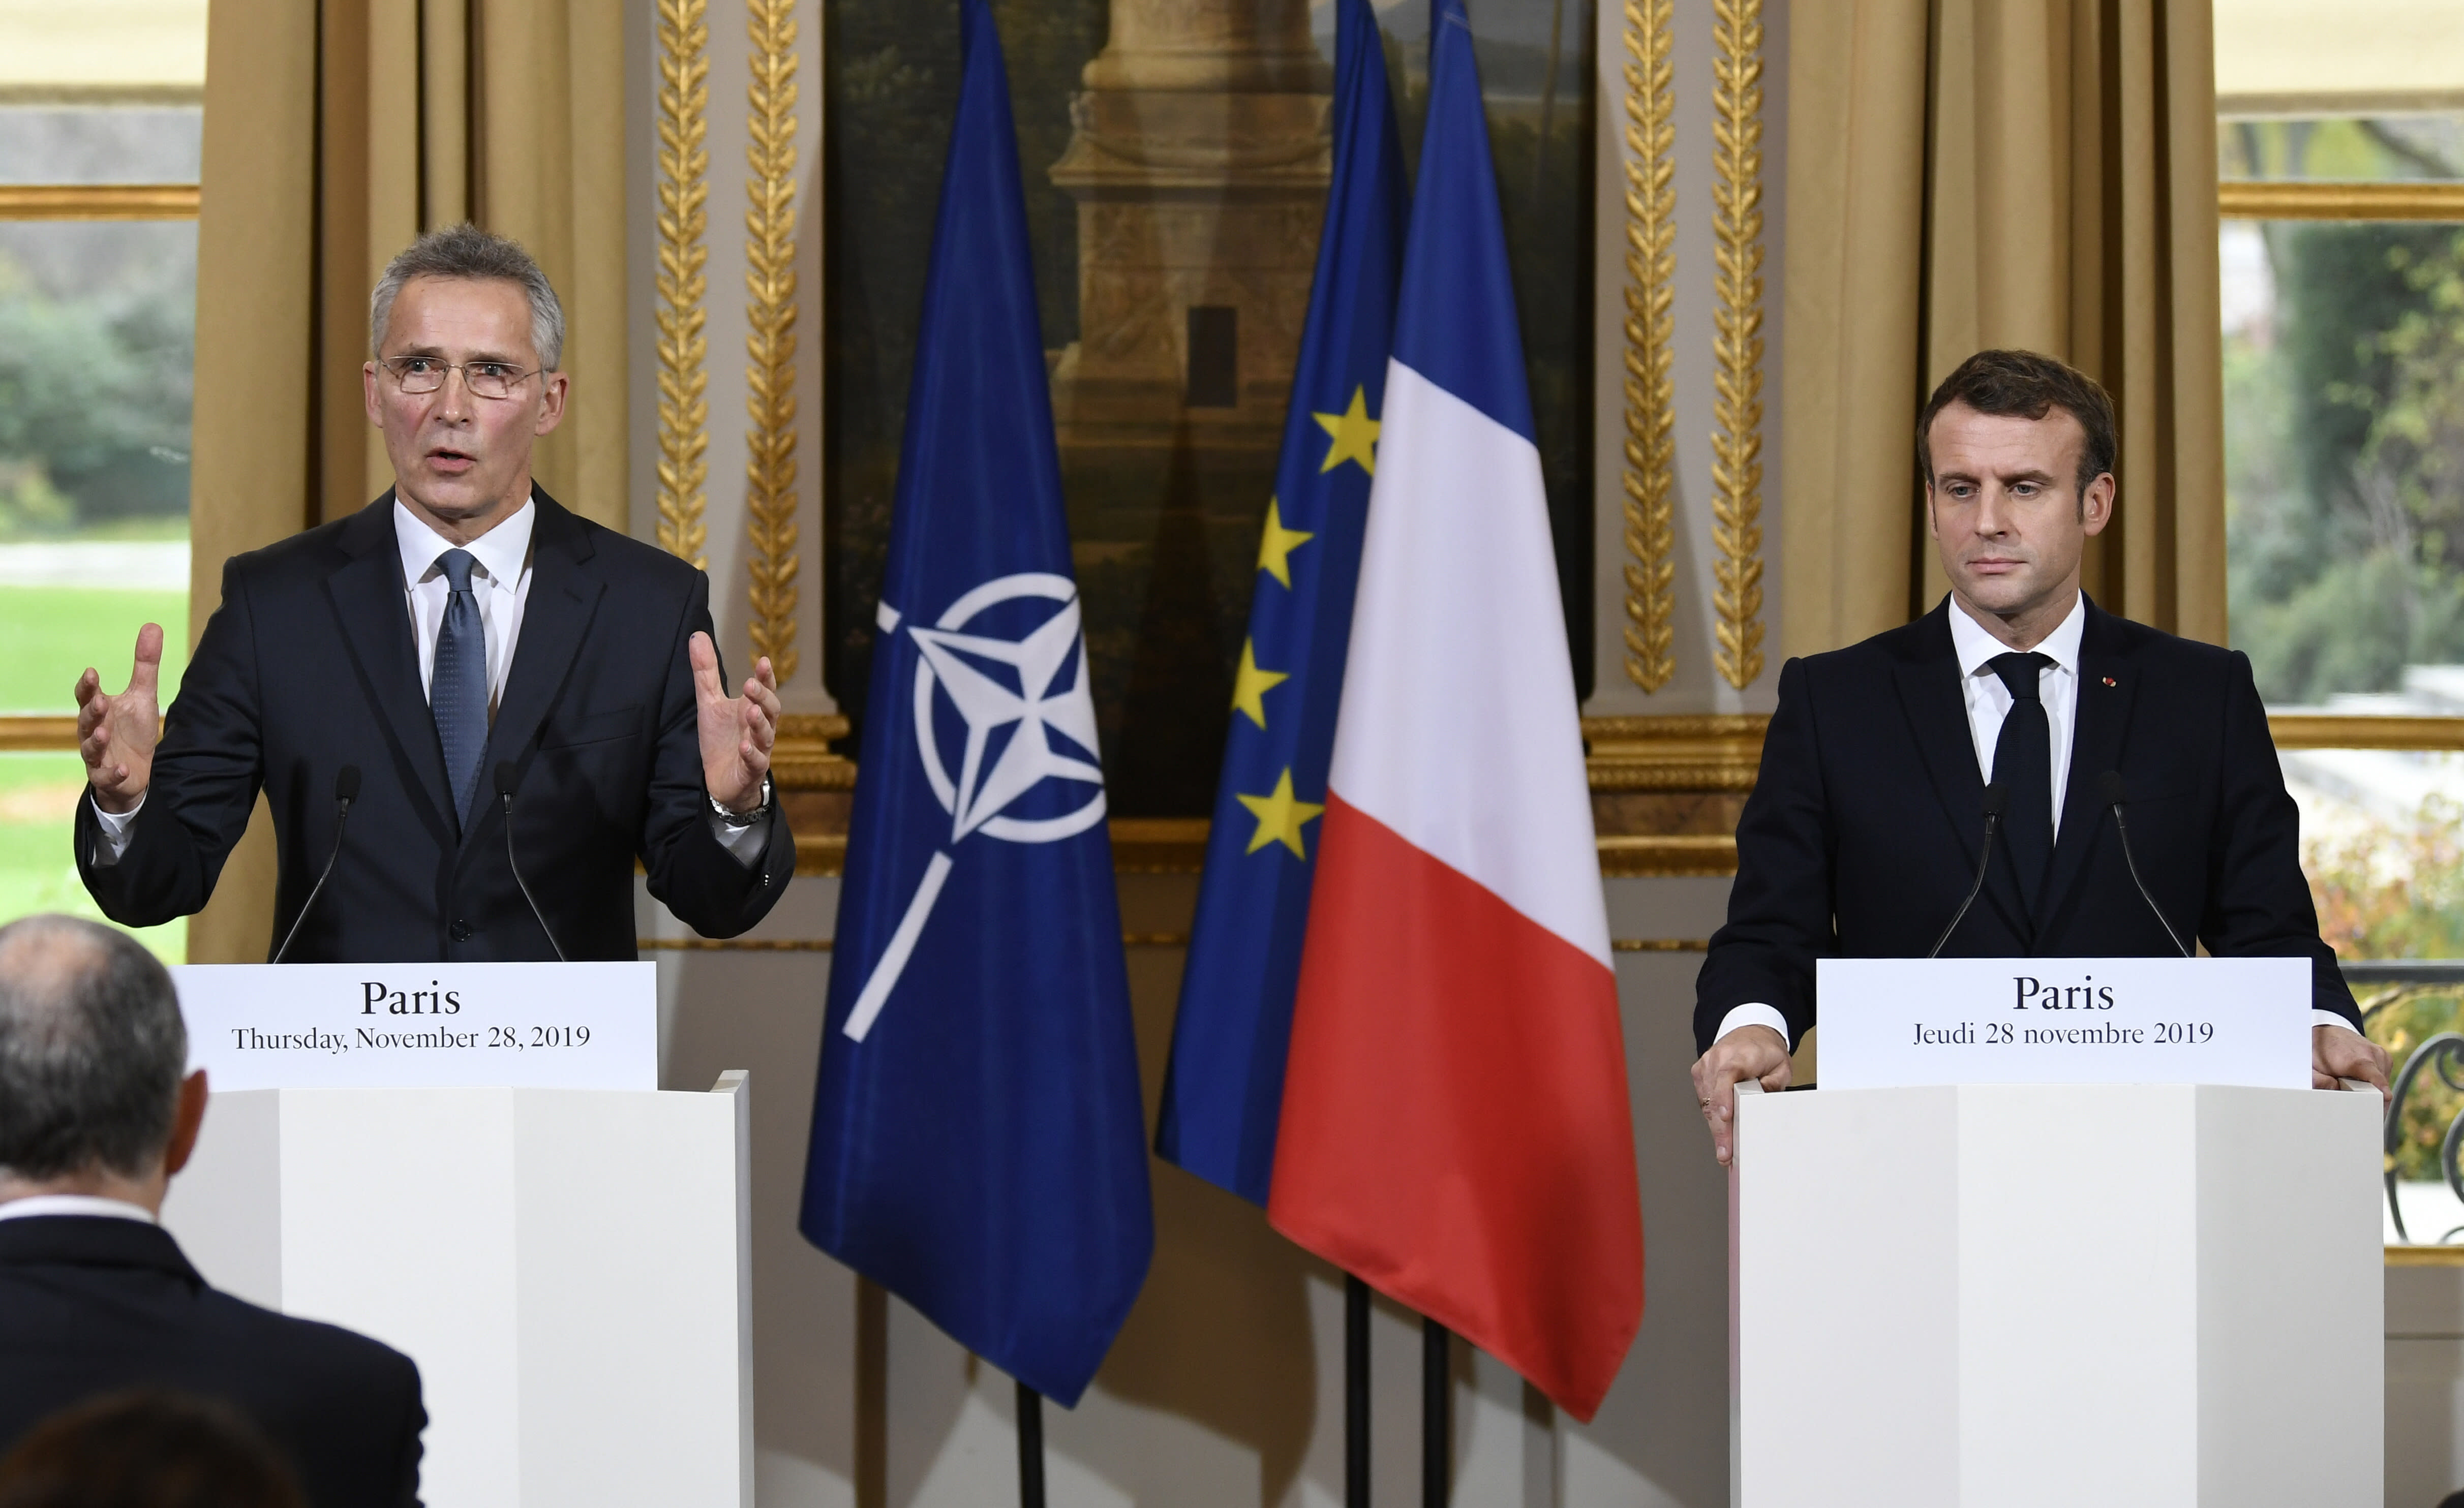 The Latest: US To Pay Less Of NATO's In-house Budget